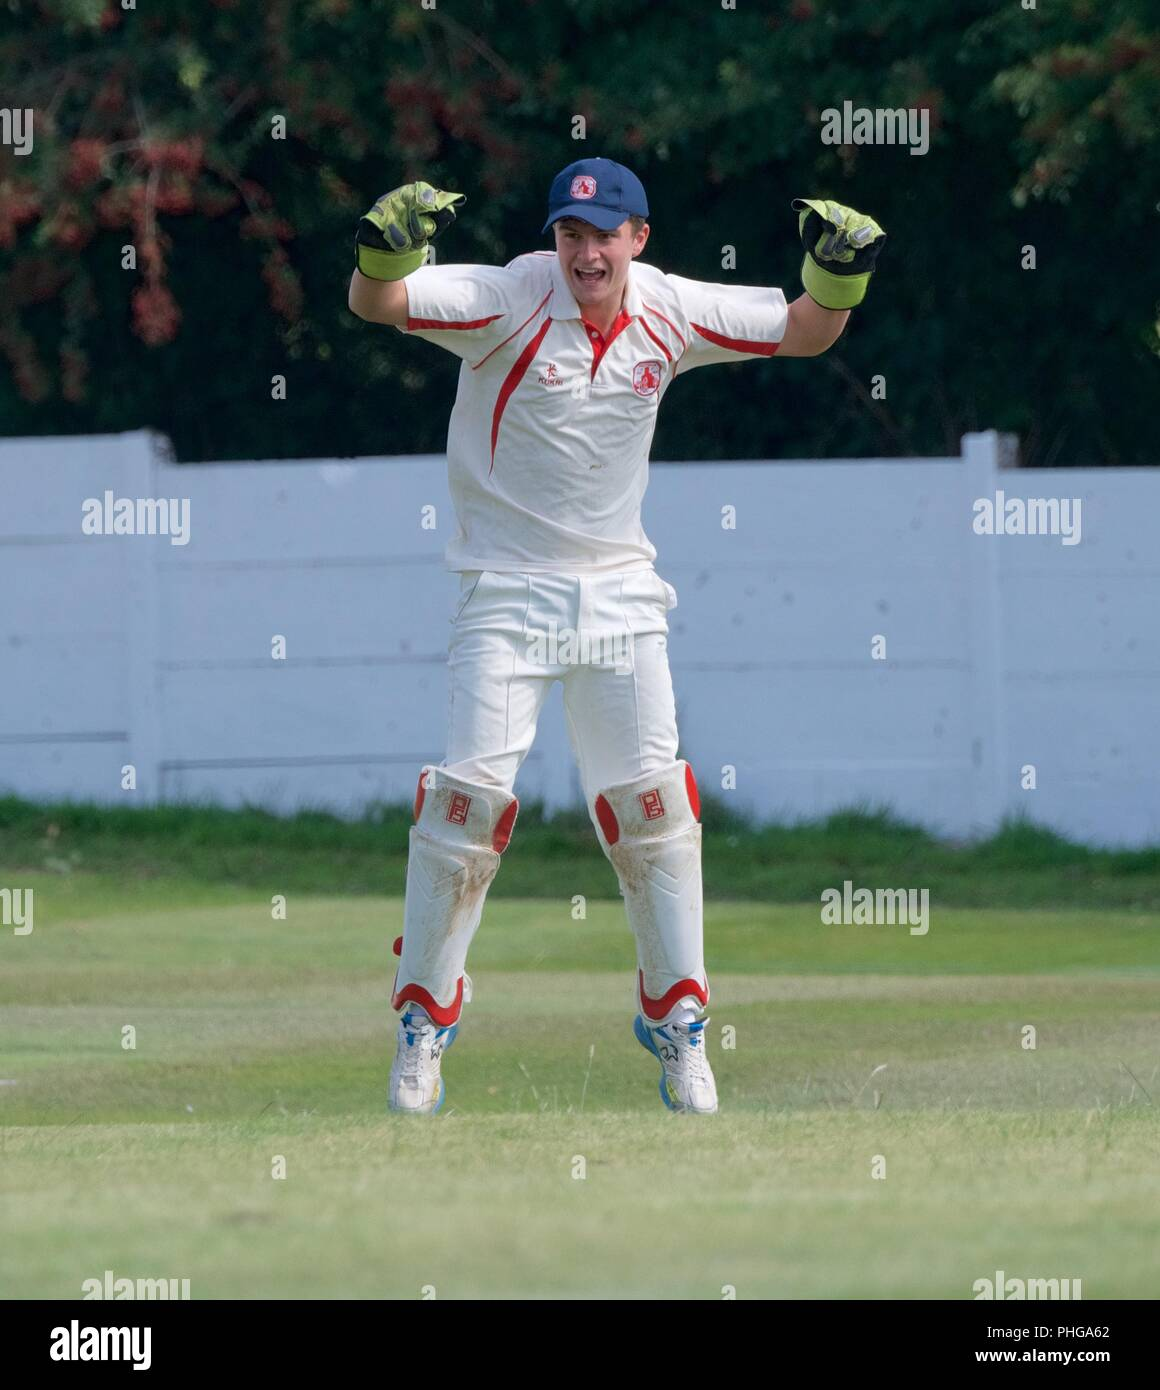 A wicket-keeper appeals in a second eleven match between Tintwistle and Mottram - Stock Image